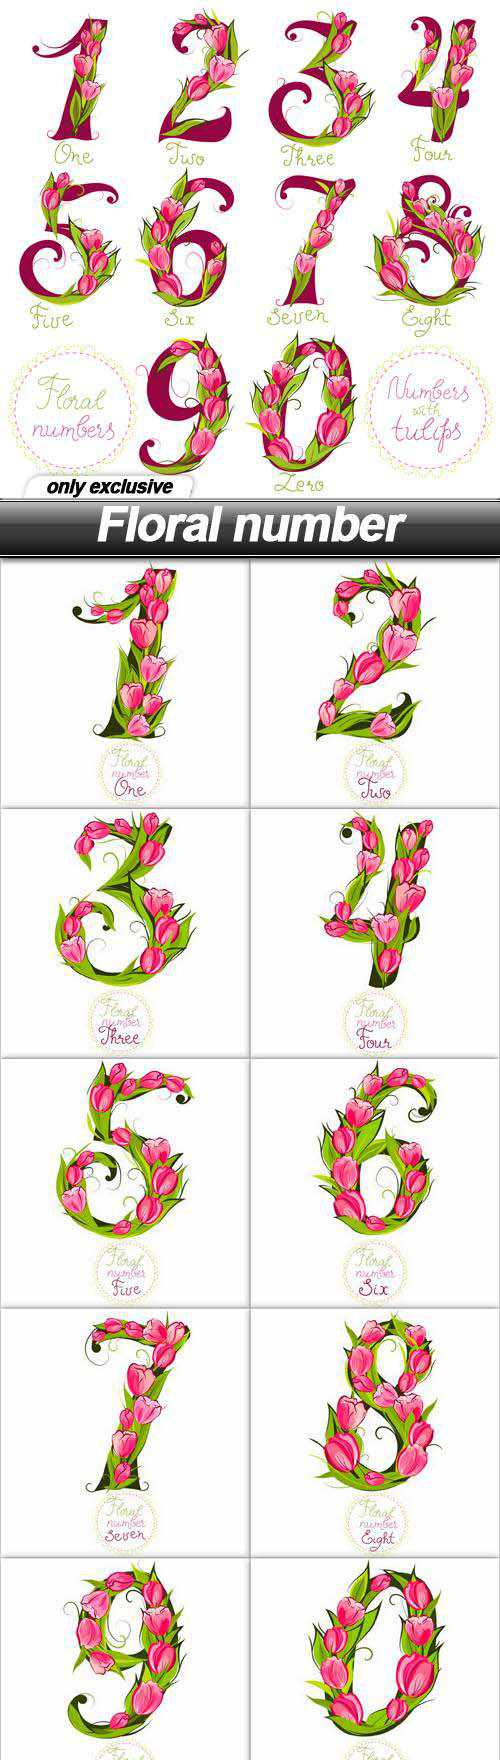 Floral number Vector